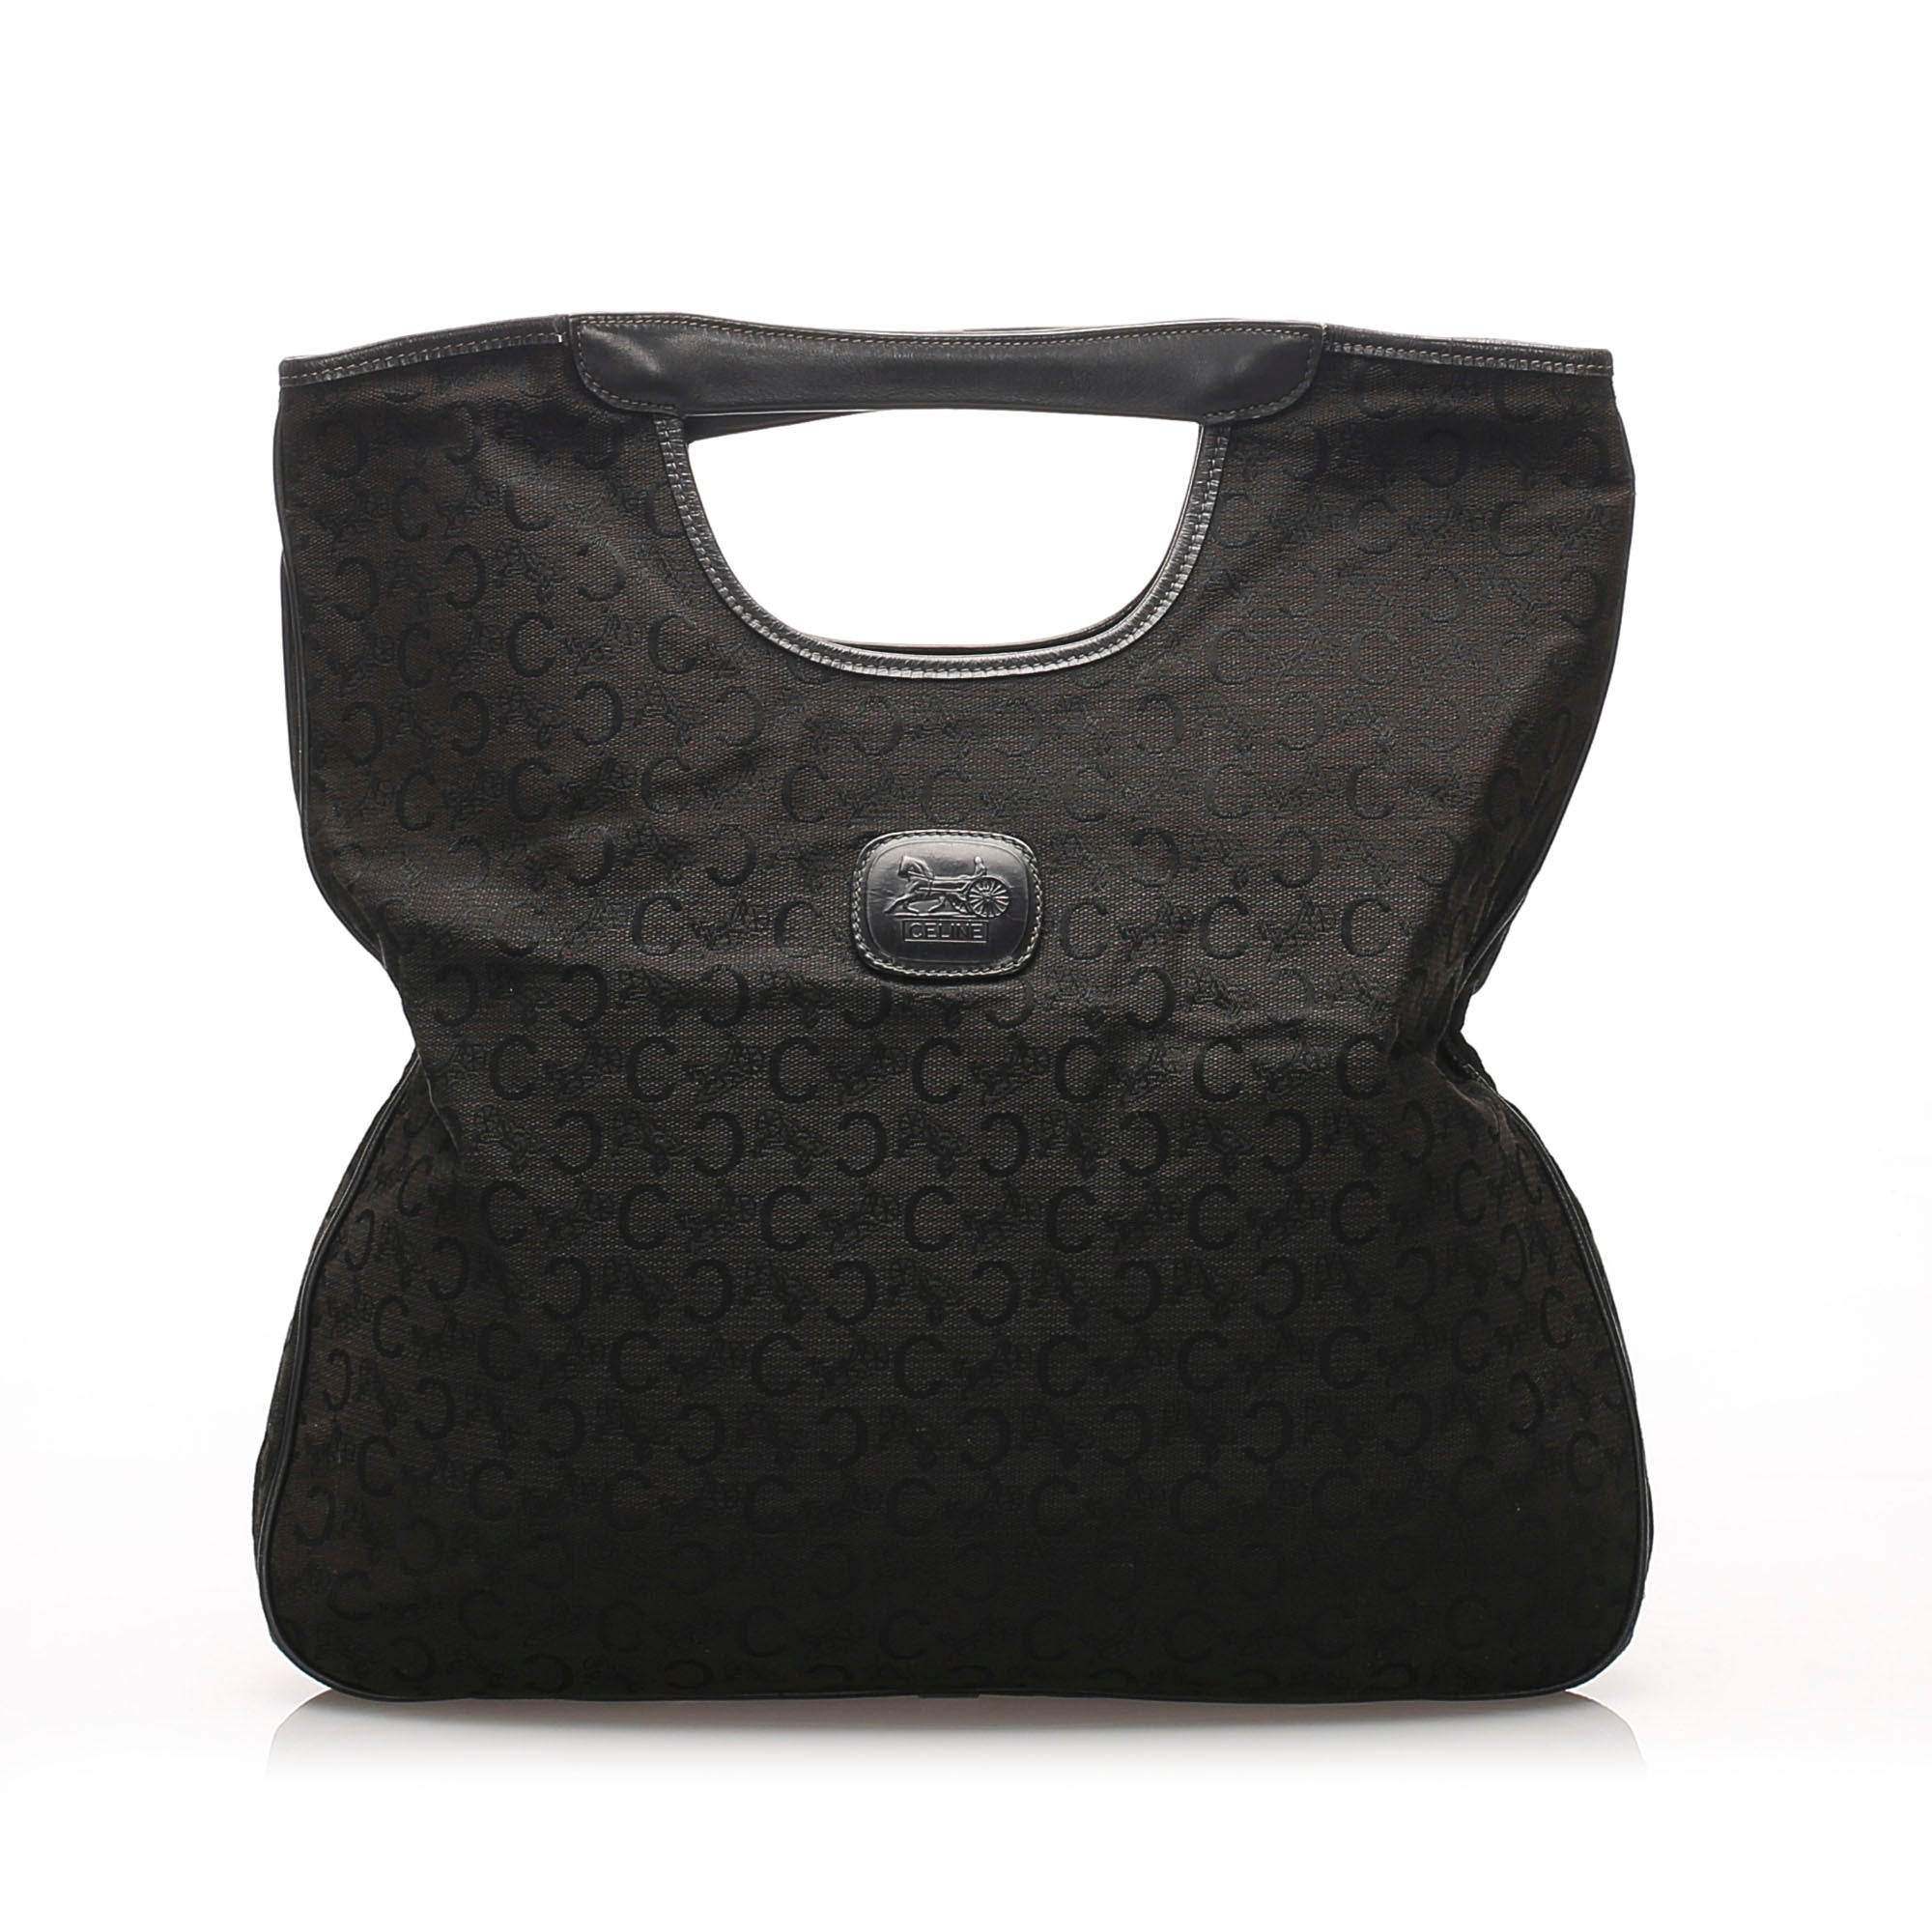 Celine Black C Macadam Canvas Handbag